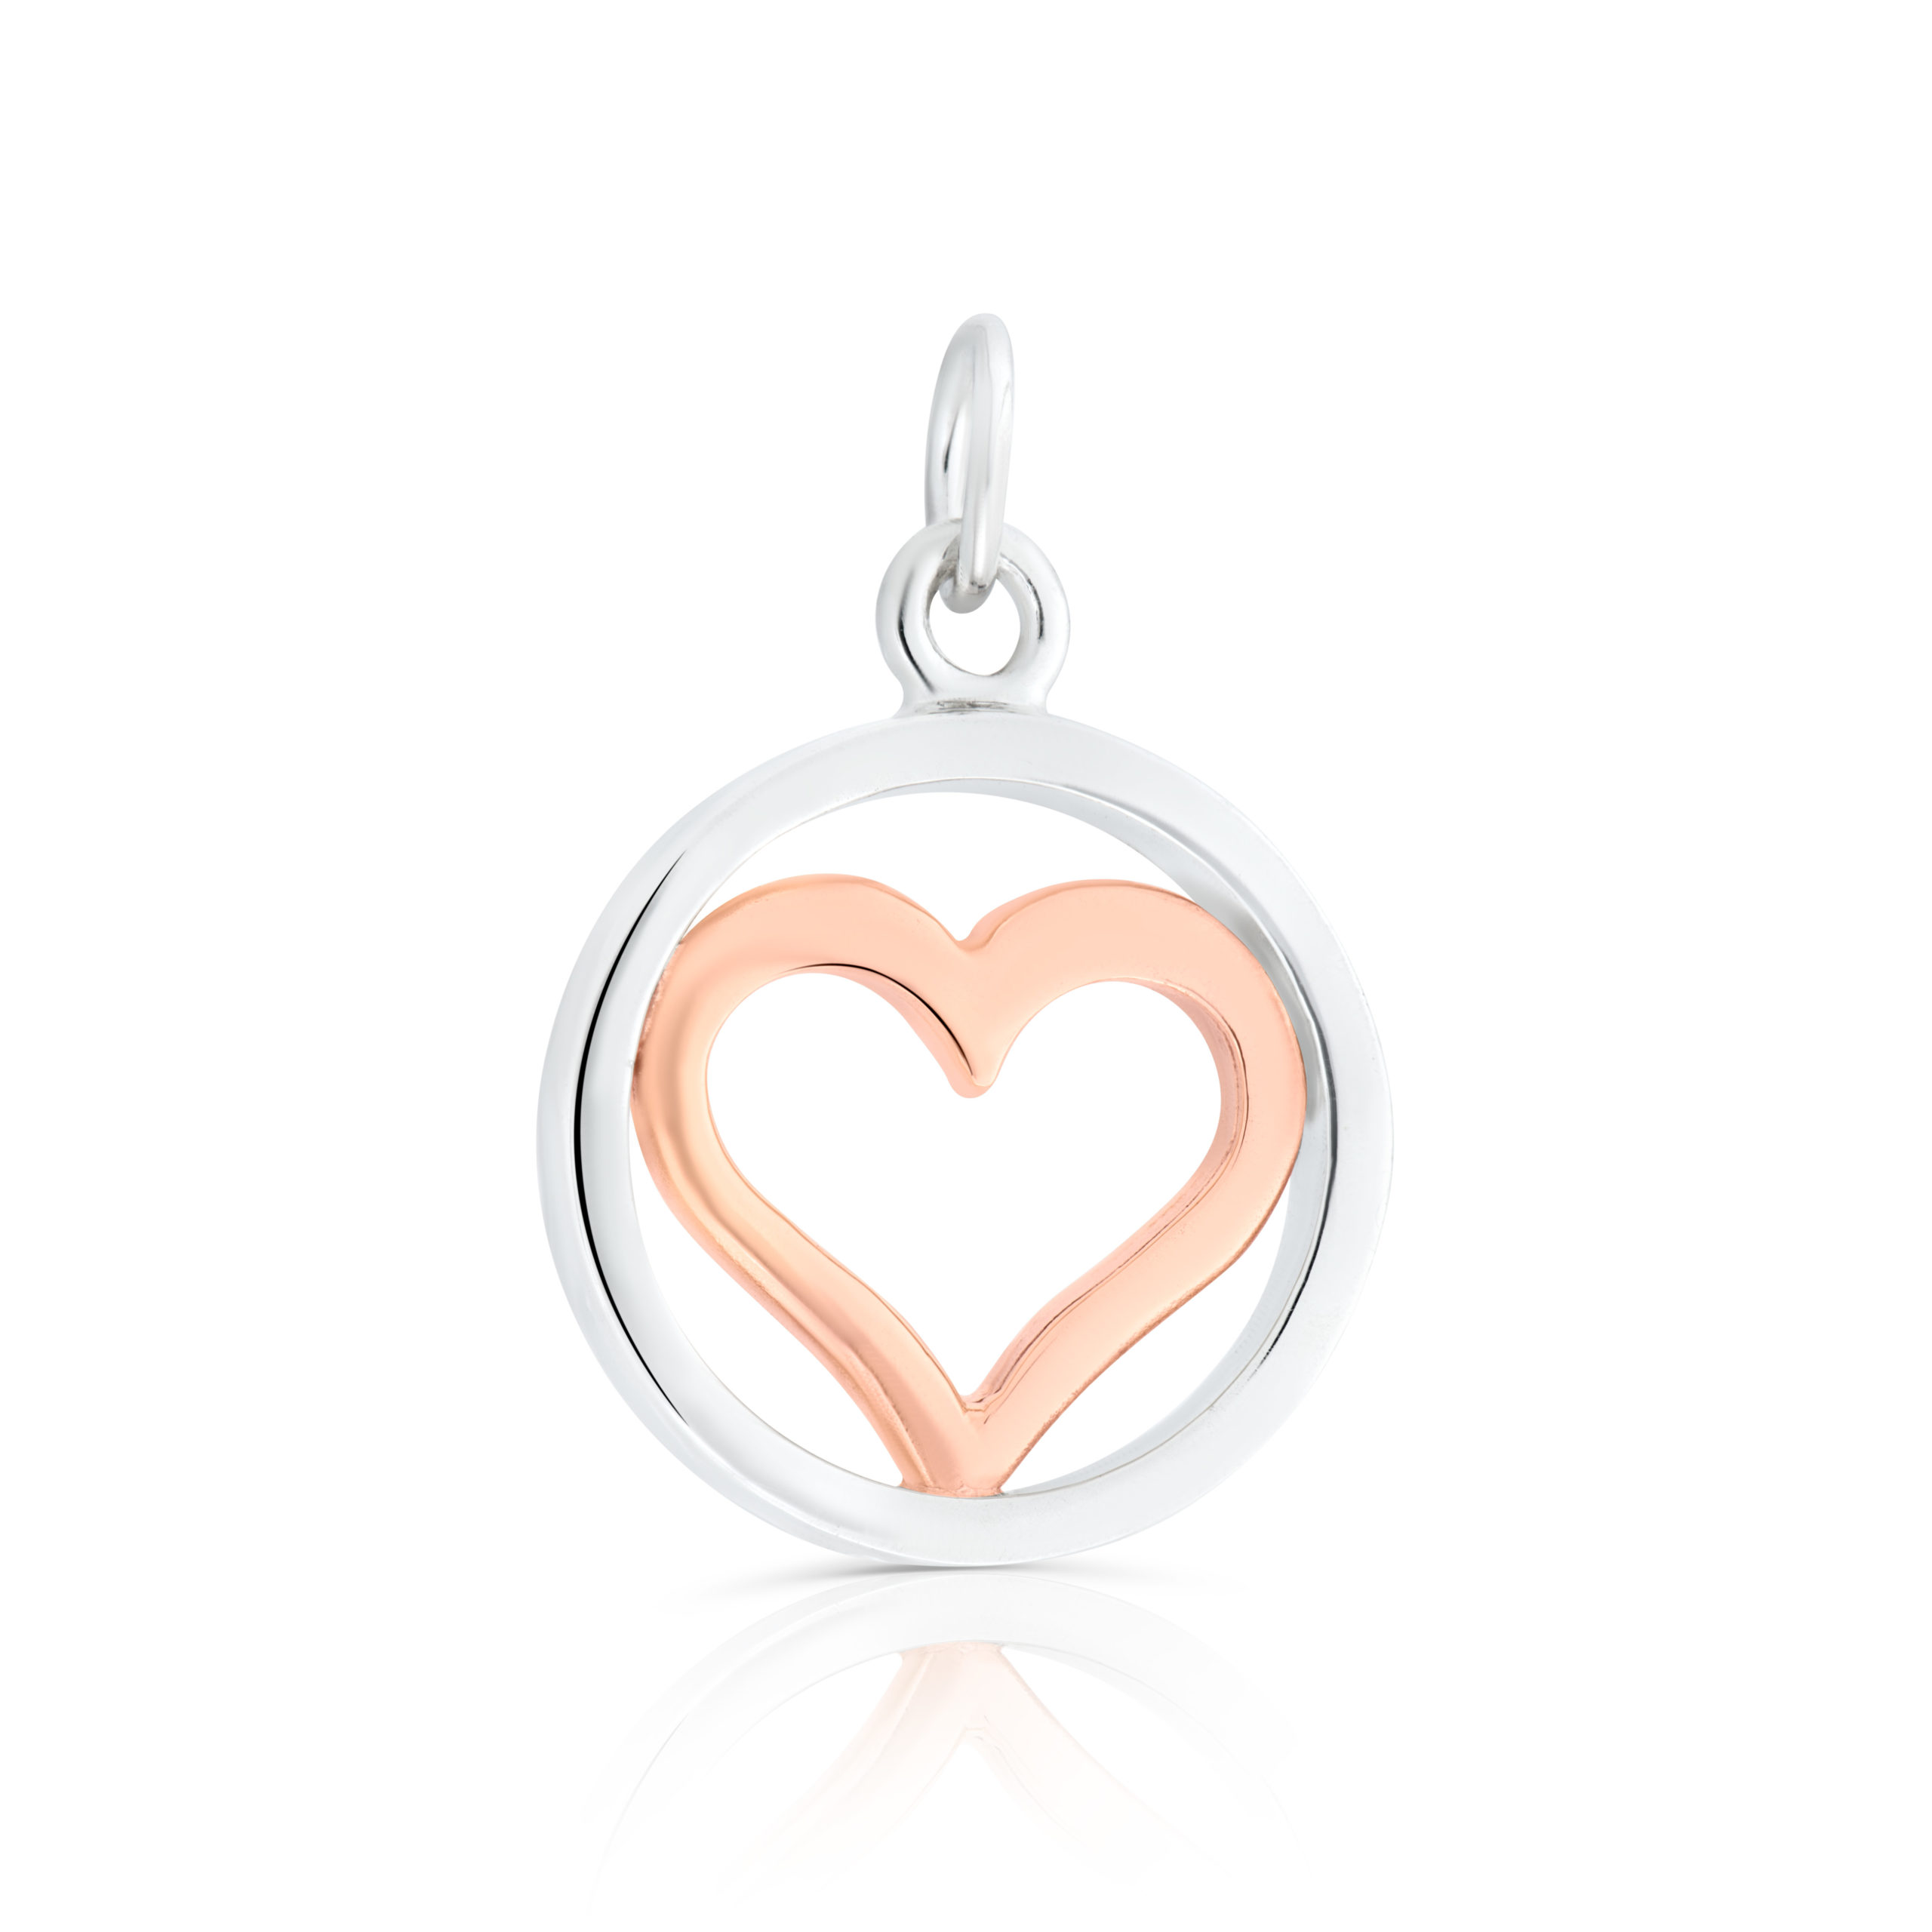 Sterling Silver & 9ct Rose Gold Heart Charm / Pendant